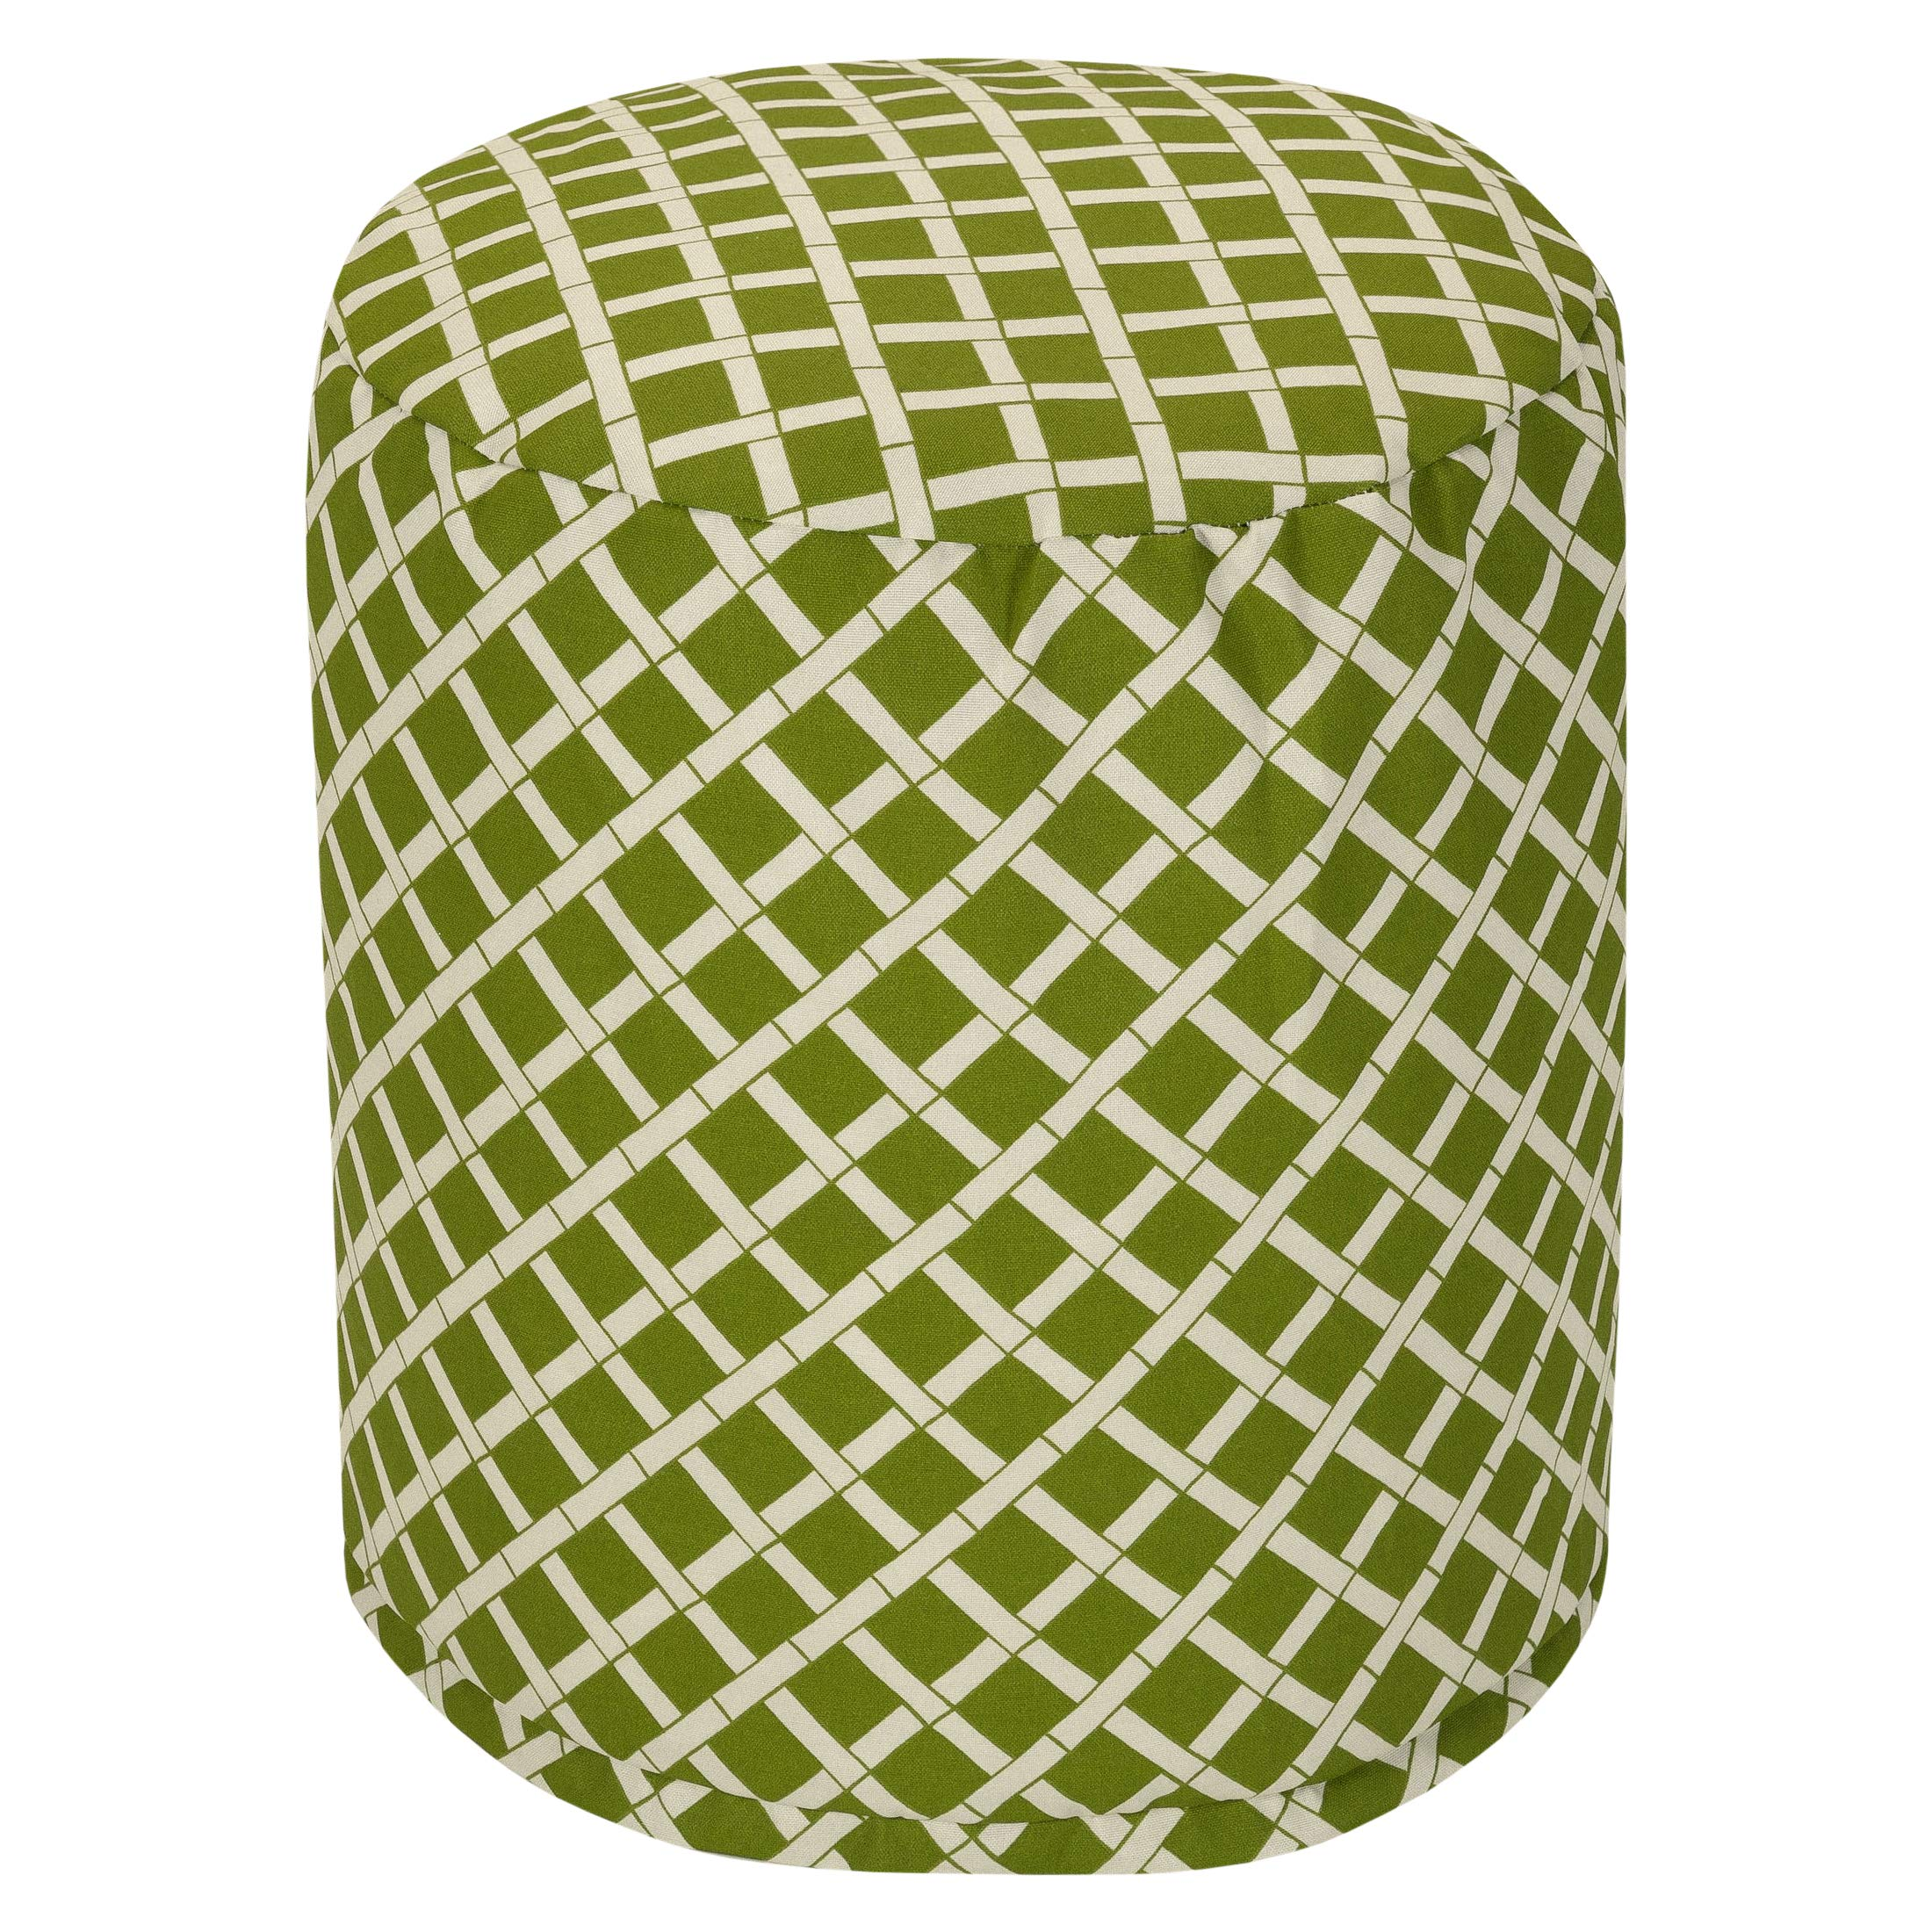 Majestic Home Goods Sage Bamboo Indoor/Outdoor Bean Bag Ottoman Pouf 16'' L x 16'' W x 17'' H by Majestic Home Goods (Image #1)